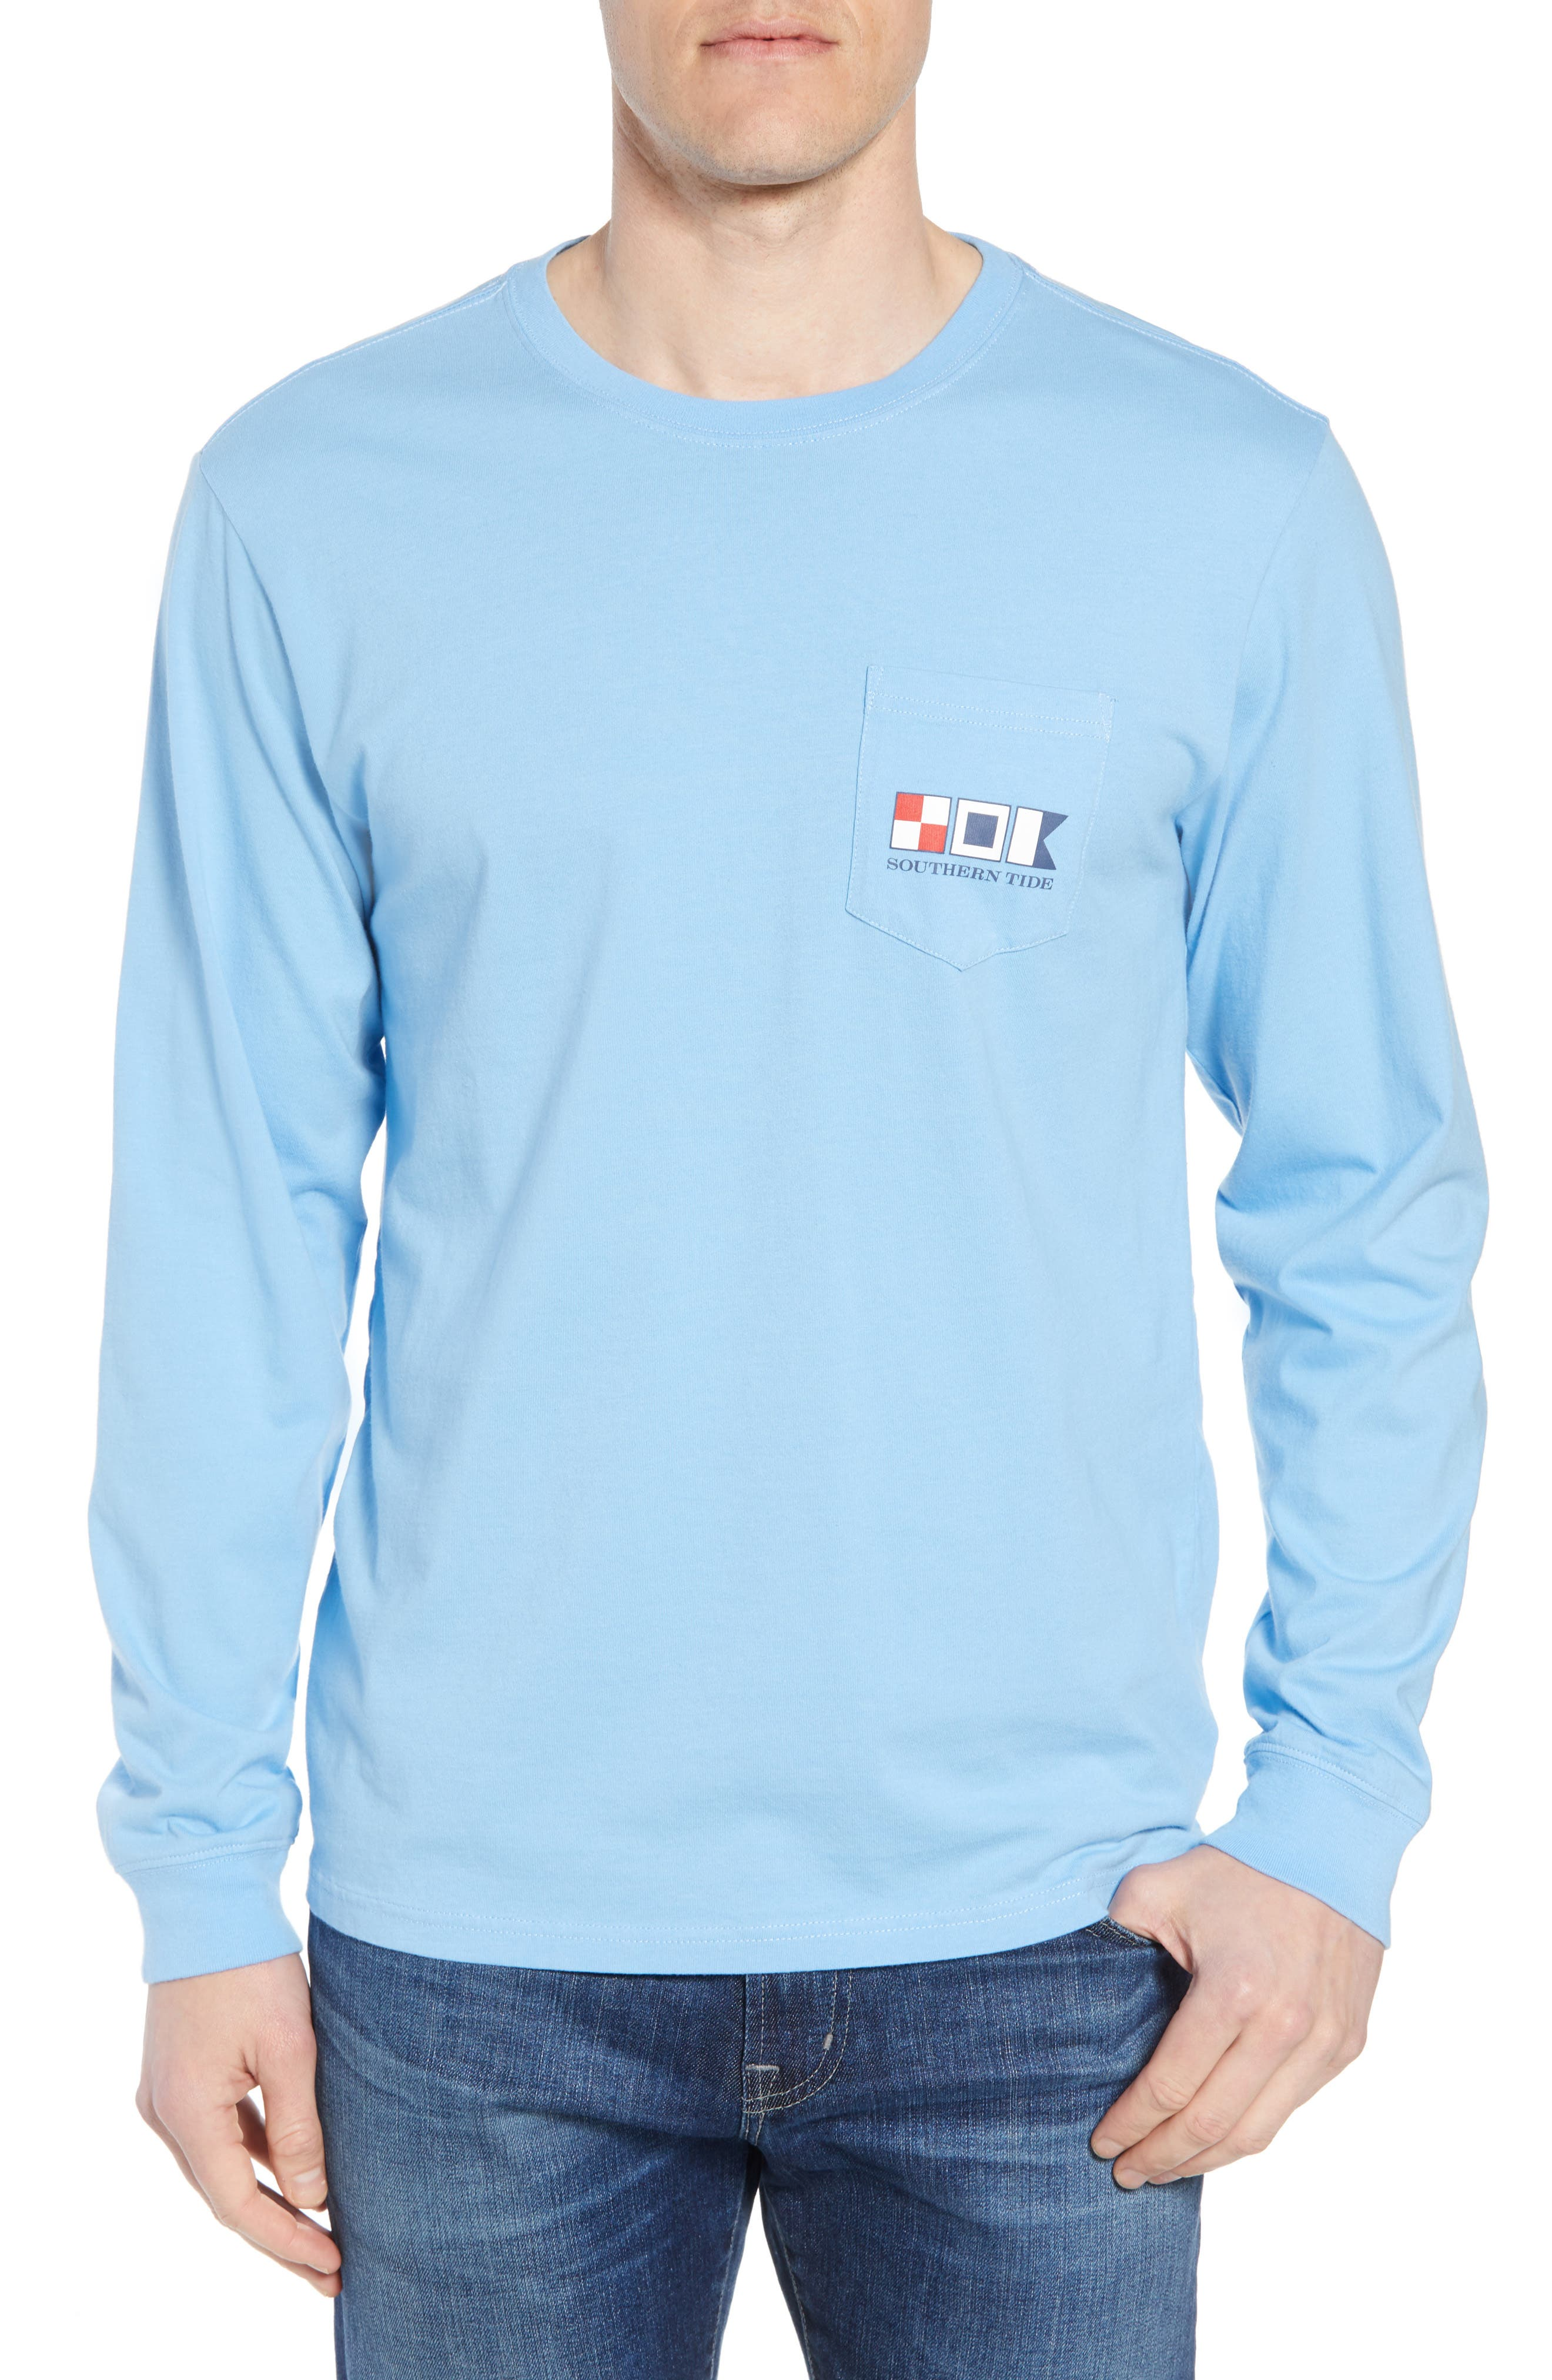 We the People Regular Fit Long Sleeve T-Shirt,                         Main,                         color, 392